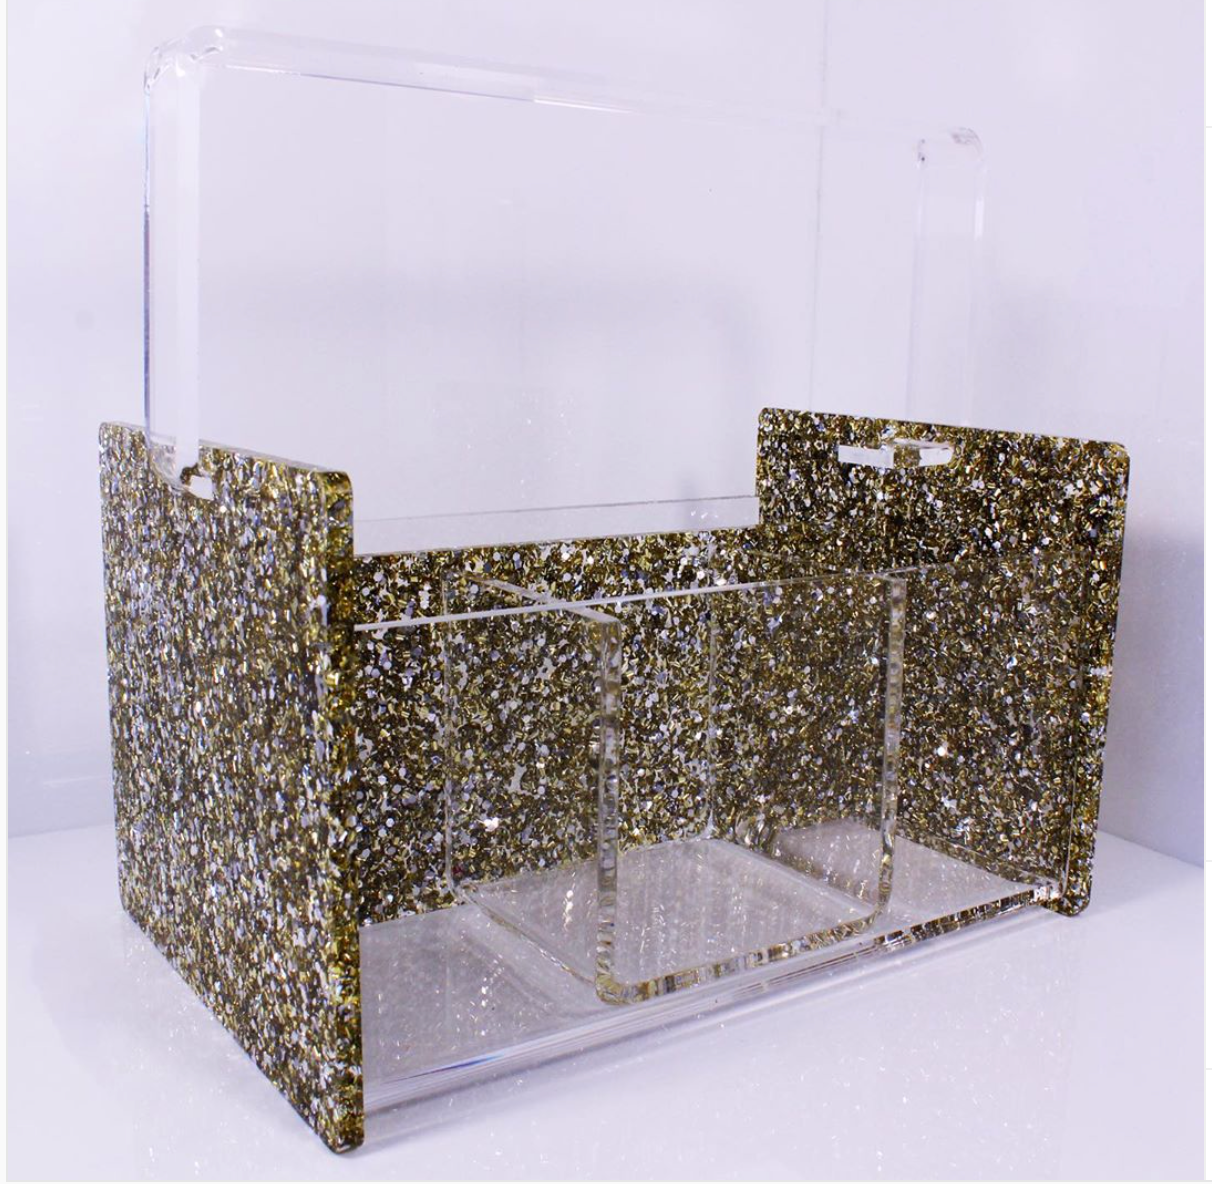 ACRYLIC SILVERWARE CADDY - Out of the Box NY Gifts